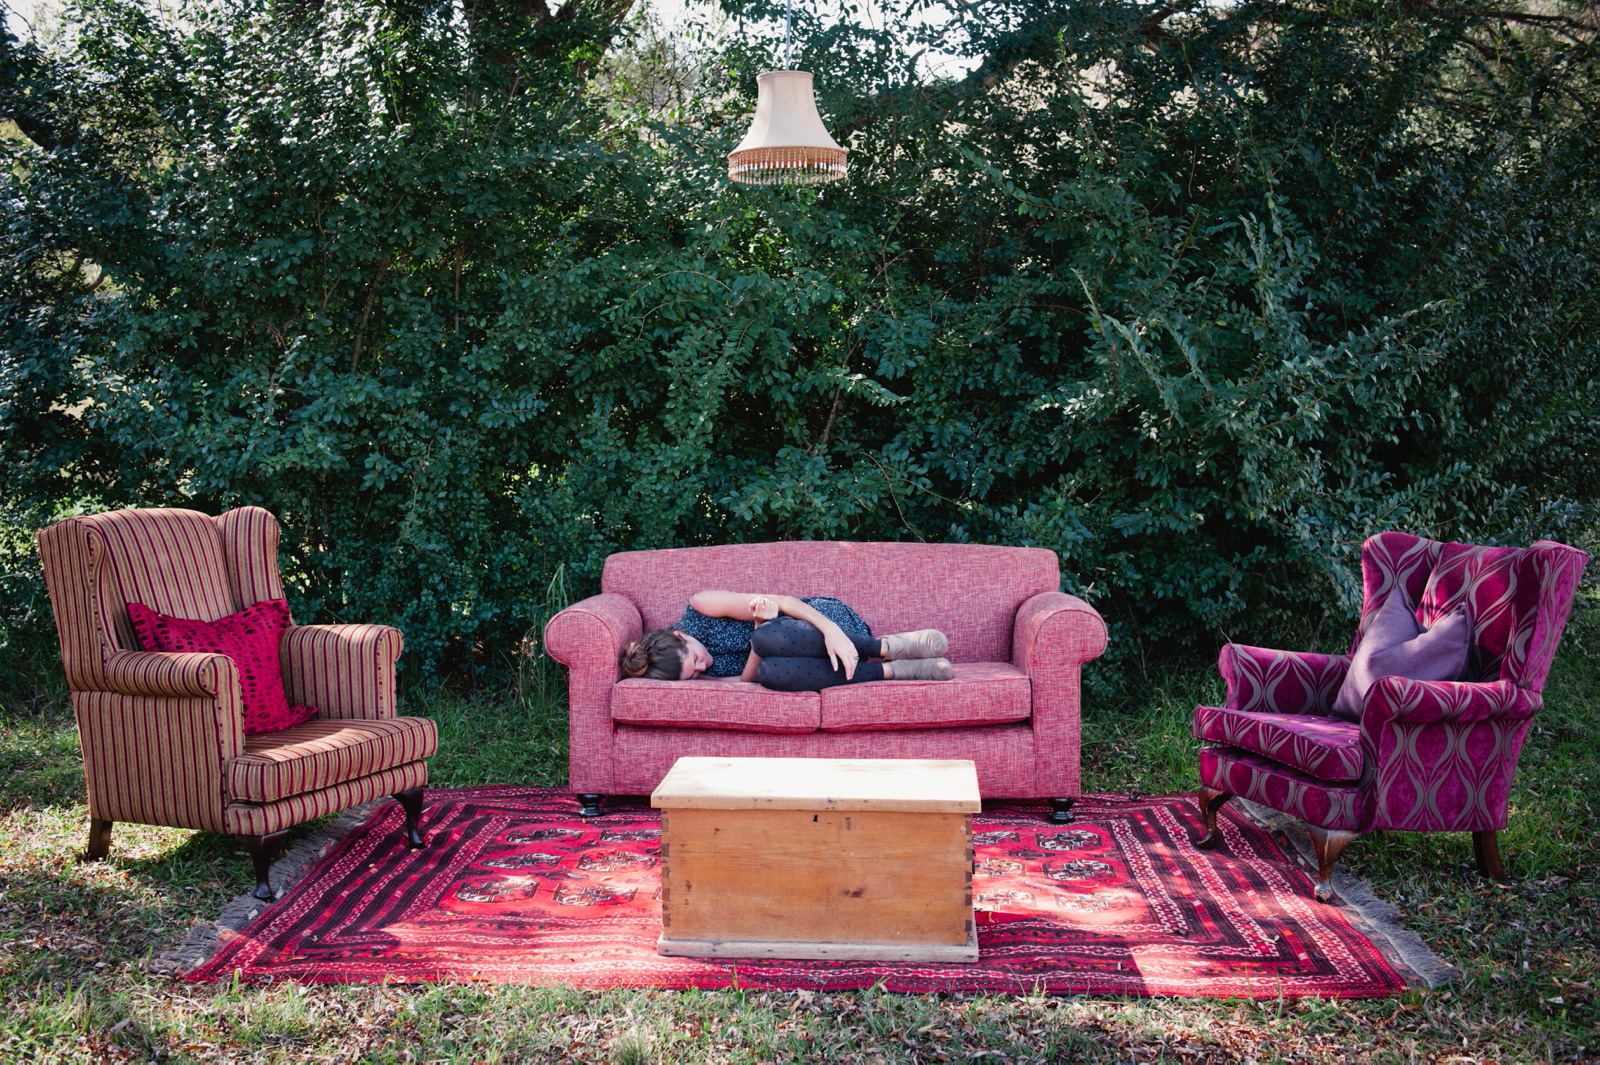 Burn out, girl sleeping on couch